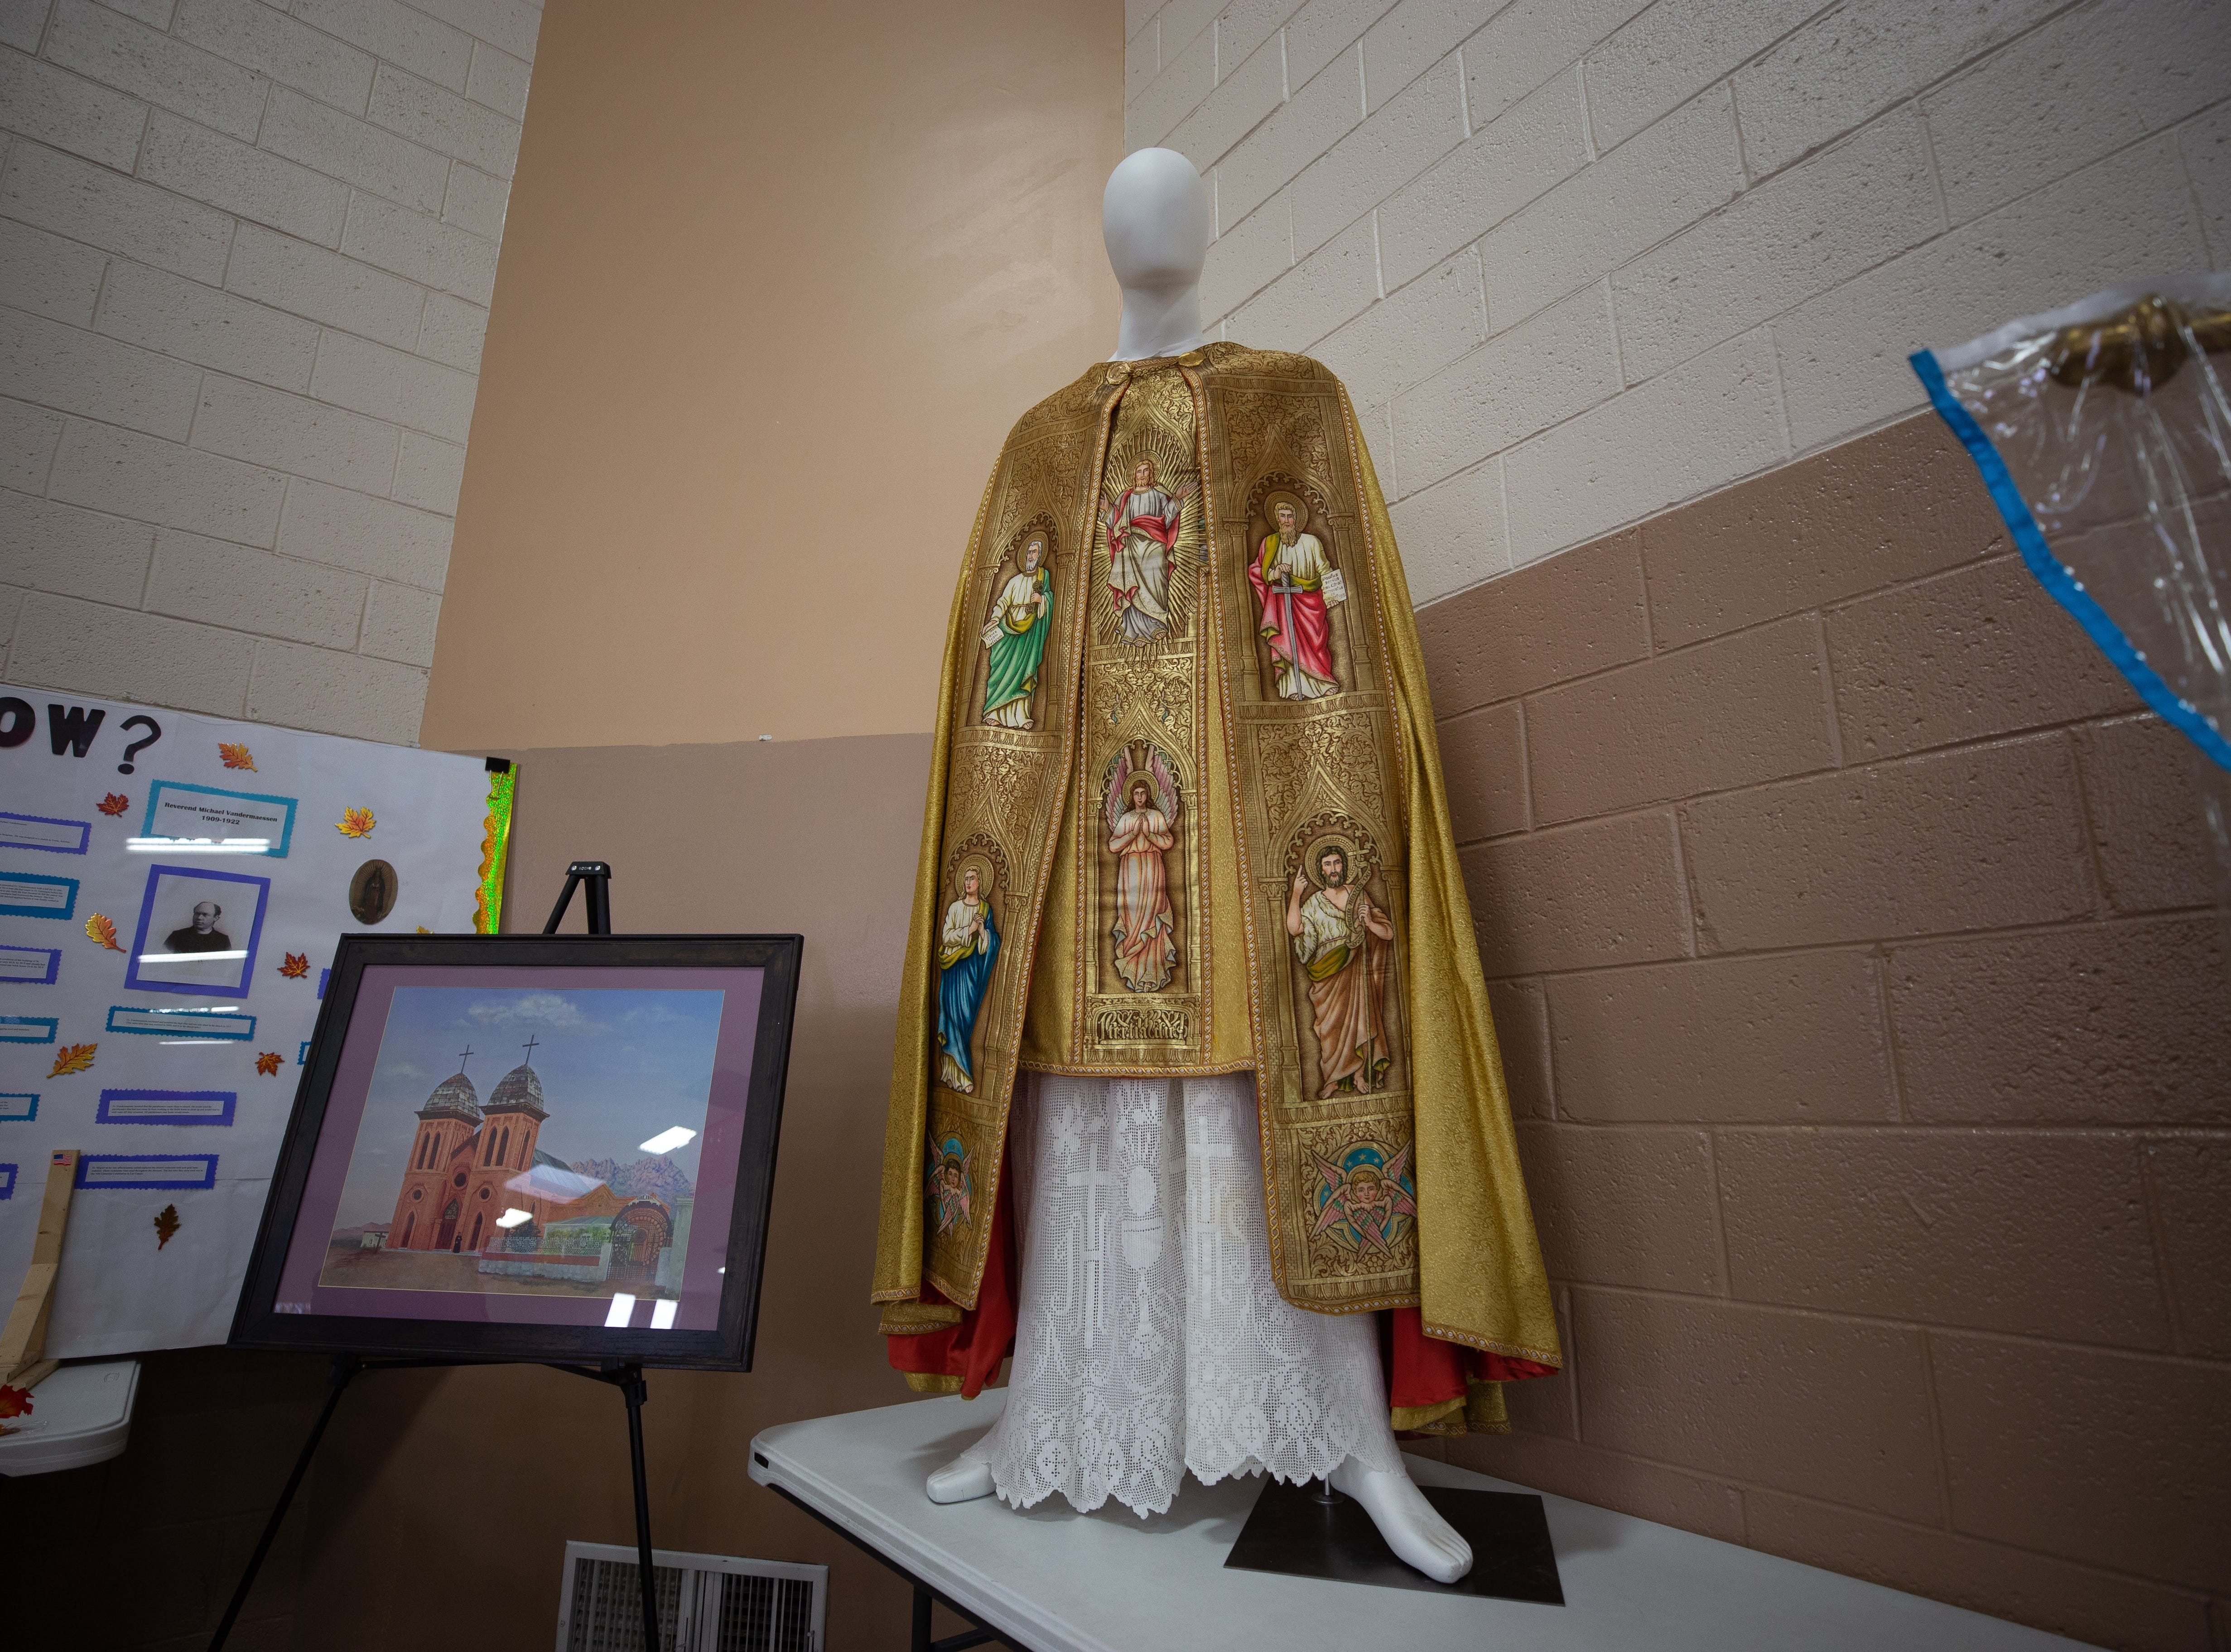 A priest's vestment, more than 100 years old, is on display at the St. Genevieve Fiesta on Saturday, Sept. 8, 2018.